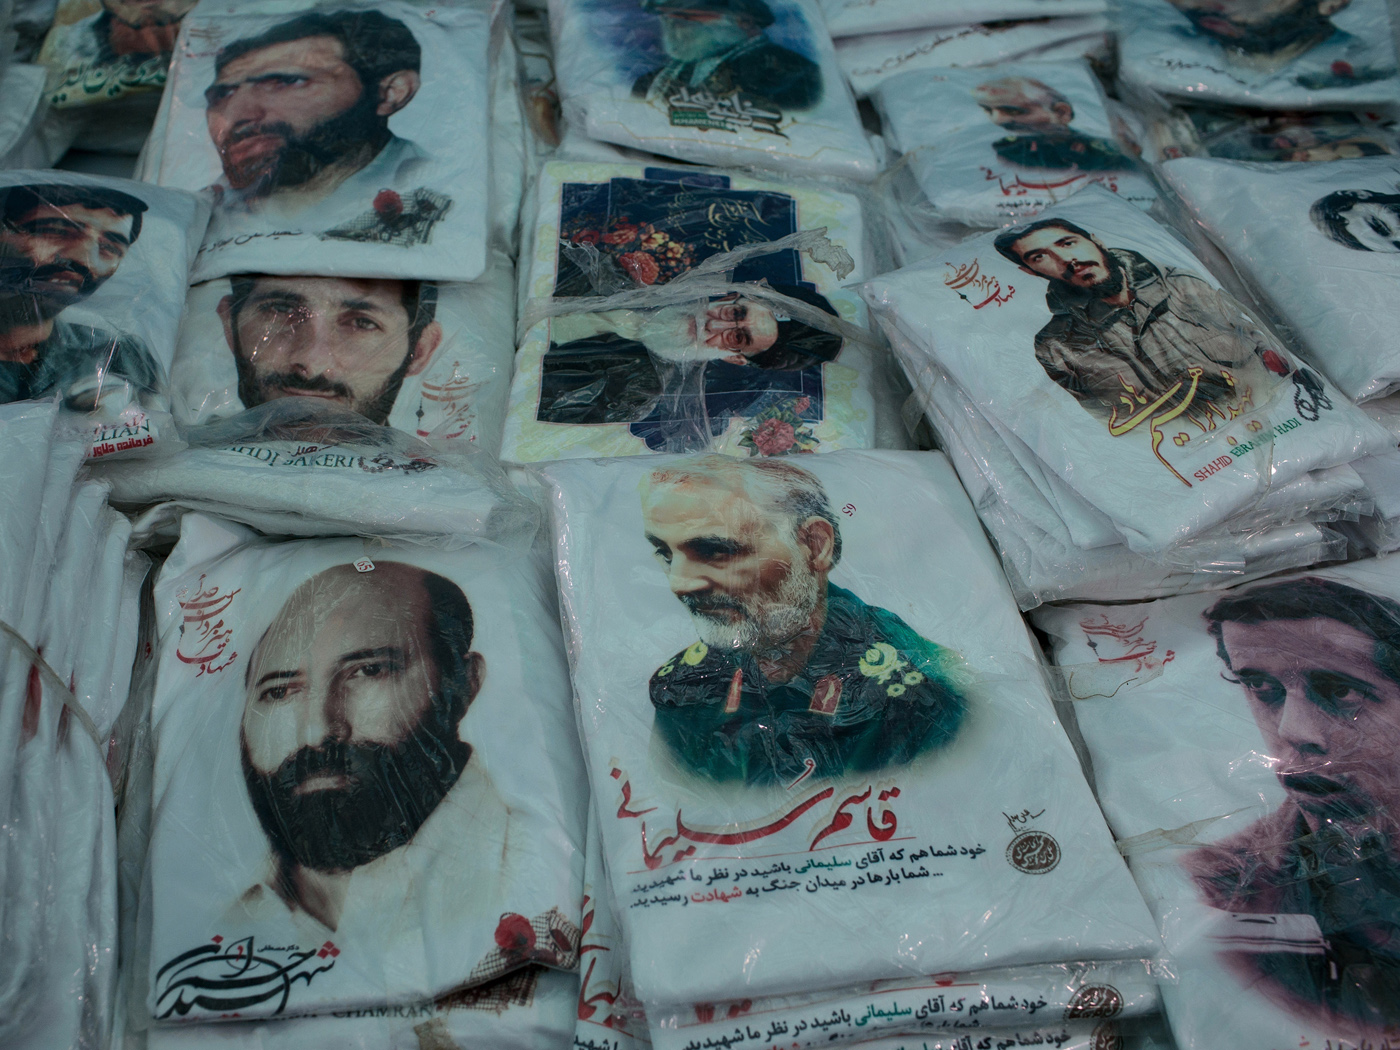 "Stacks of T-shirts printed with portraits of prominent martyrs from different generations Ali Sayyad Shirazi, Mehdi Bakeri, Mostafa Chamran, Ghassem Soleimani, Hassan Bagheri and Ebrahim Hadi, lay out for sale around ones depicting the Supreme leader of the Islamic Republic, Ayatollah Ali Khamenei in a market at the Martyrs' Memorial. Martyr related merchandise in ""Che Guevara style"" is an important industry addressing a pious clientele across the Shiite Middle East."